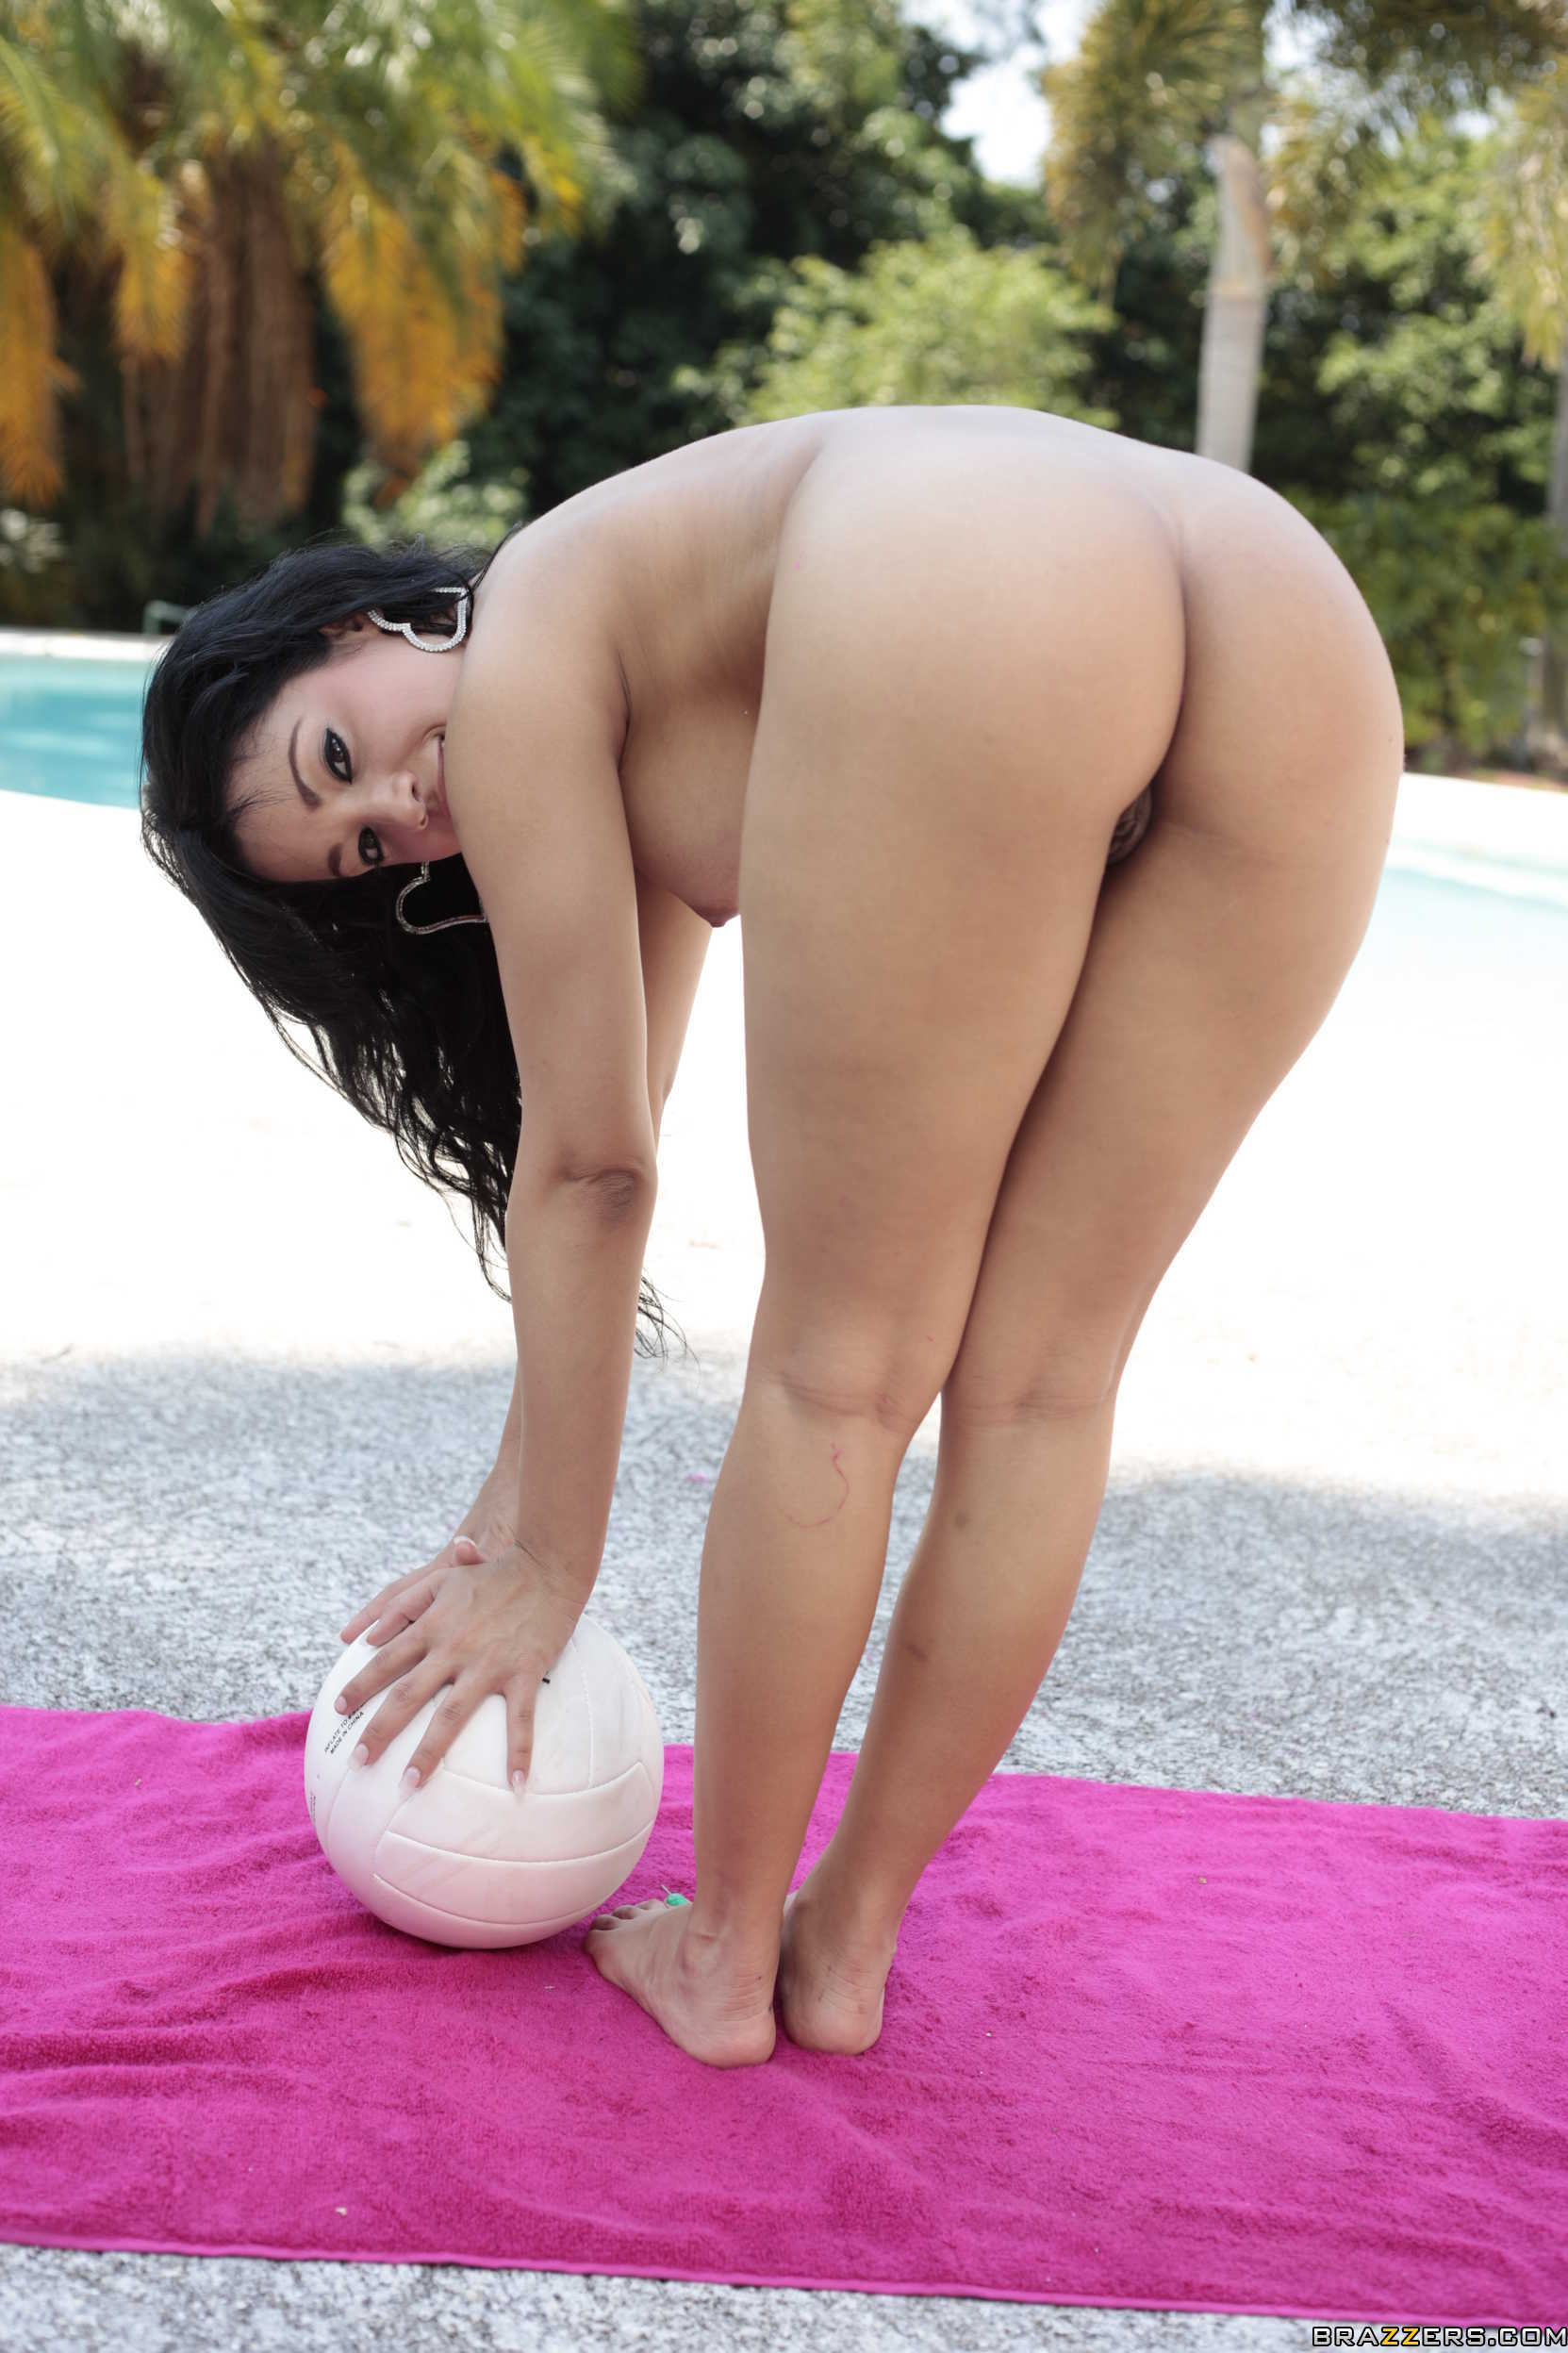 Abella anderson ass topic interesting